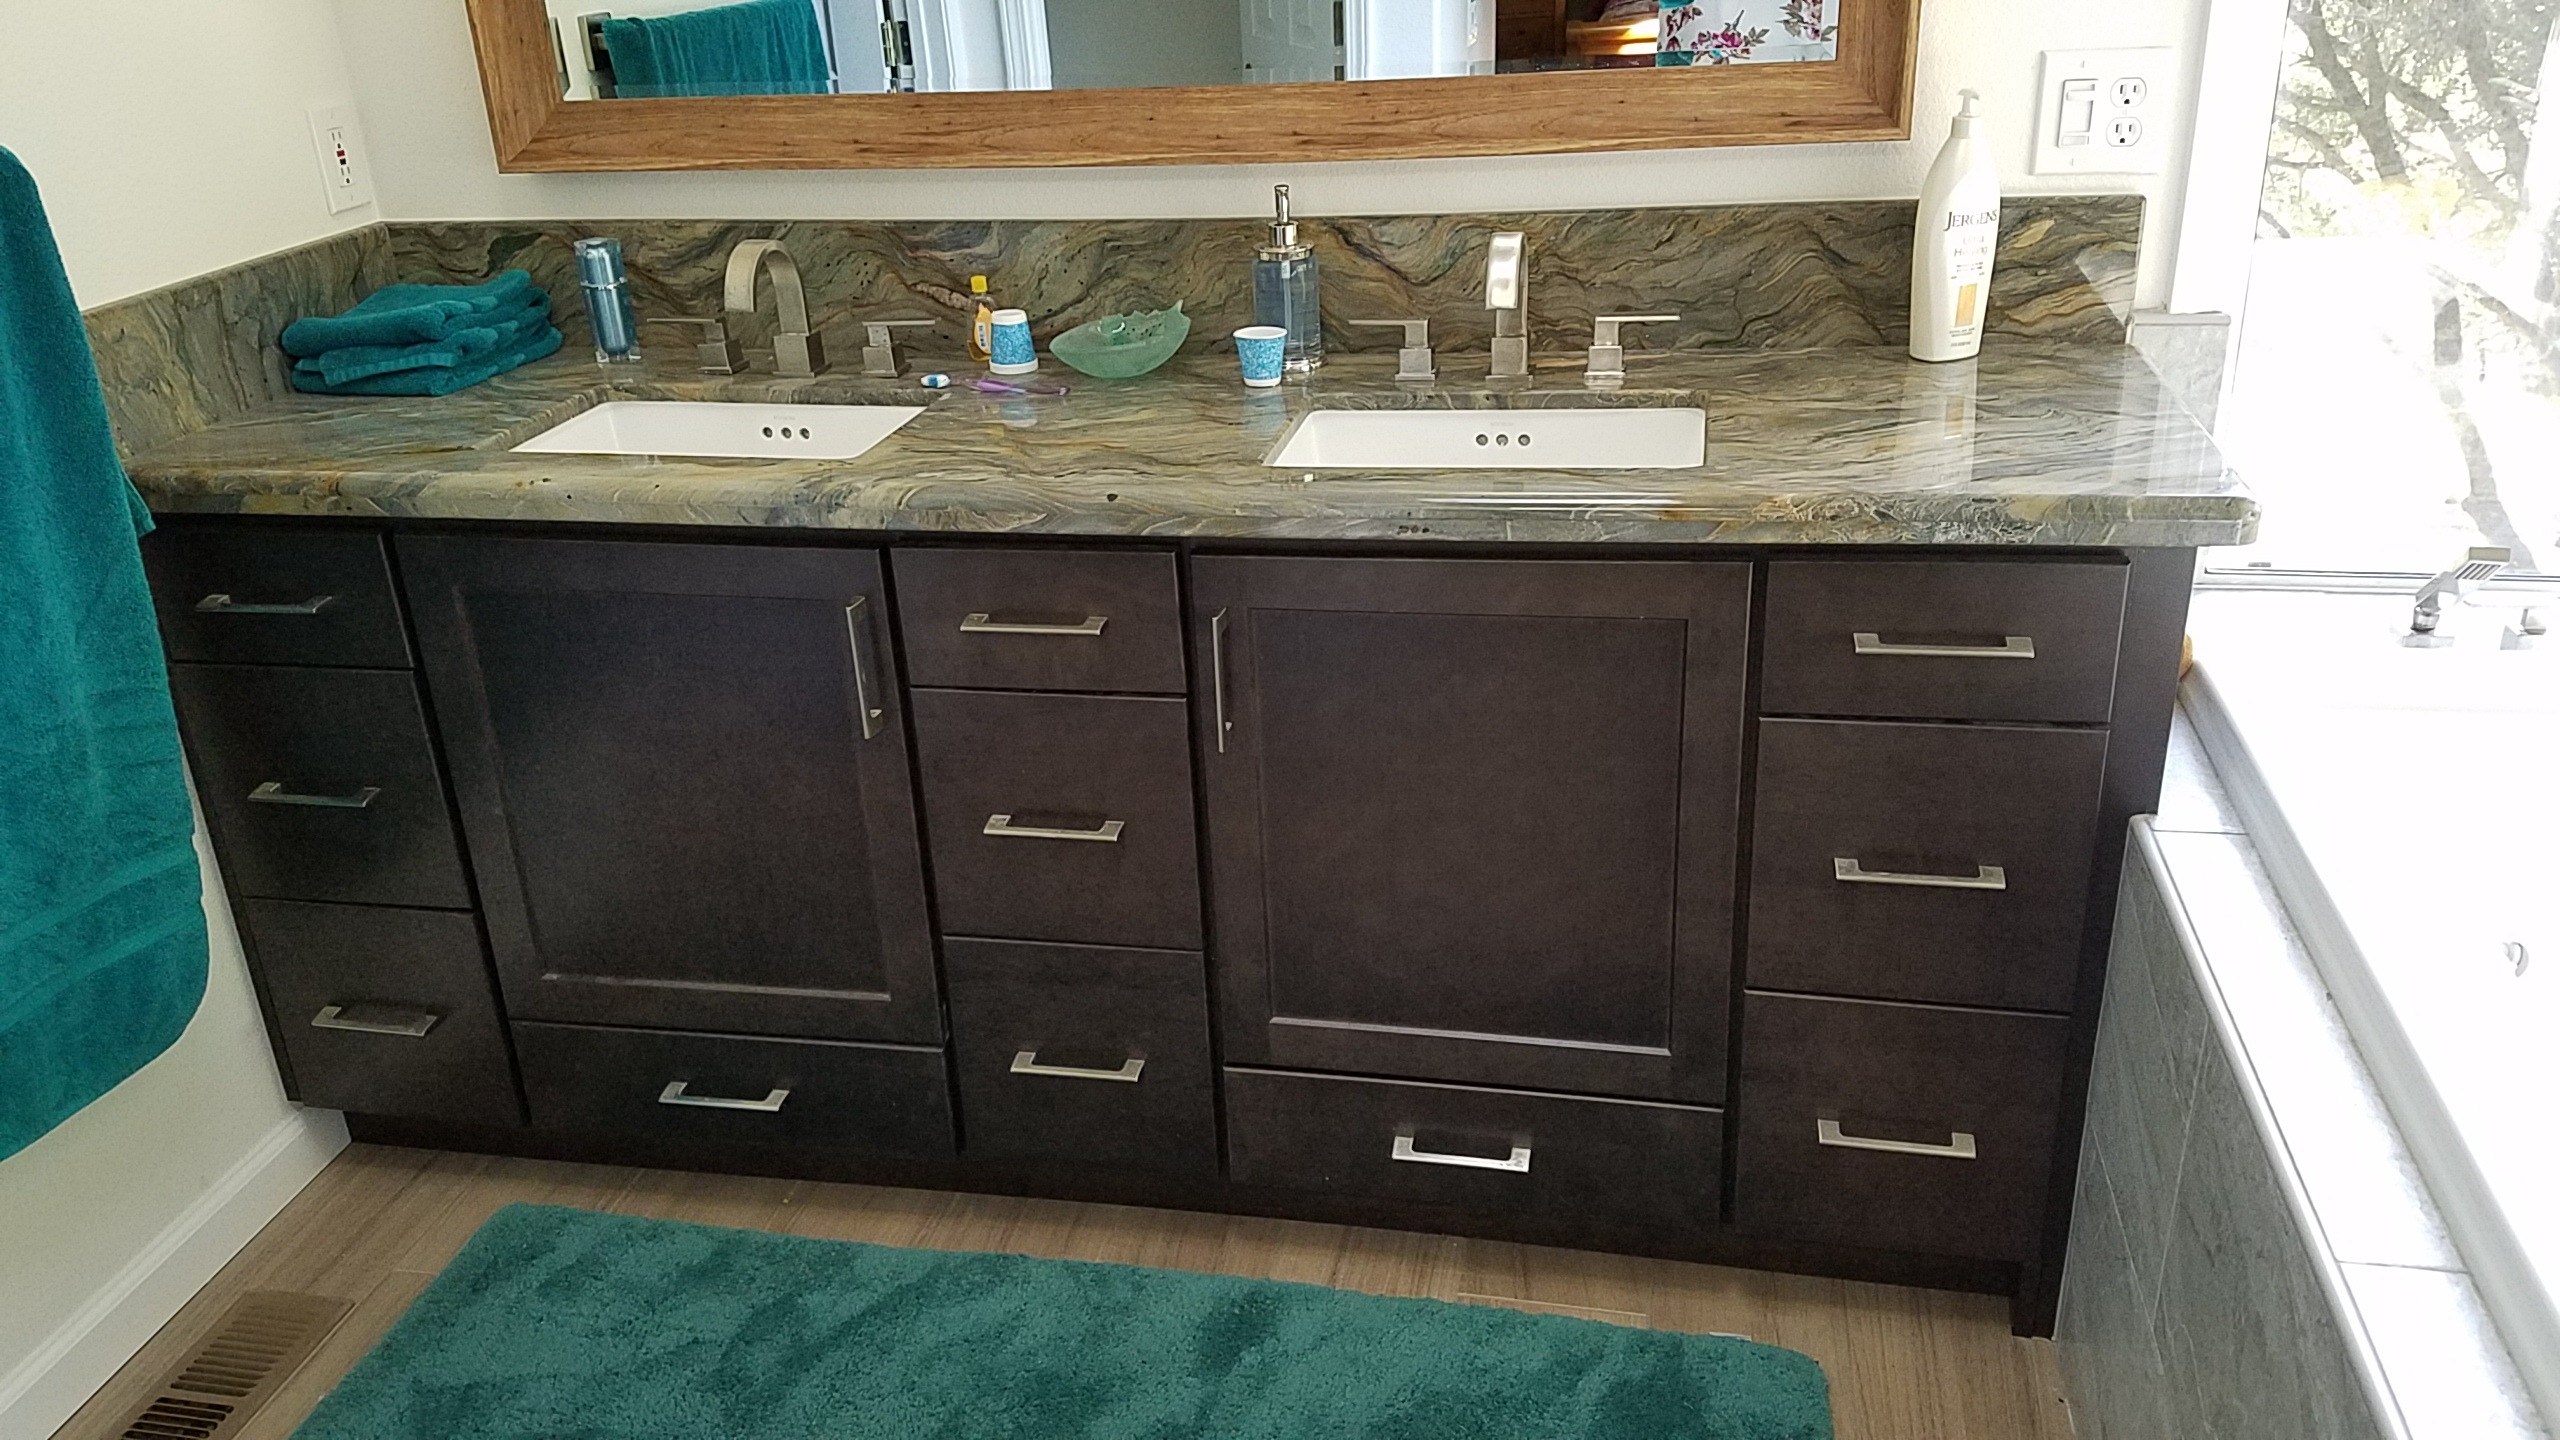 Bathroom vanity with dark cherry cabinets and tan marble counter.